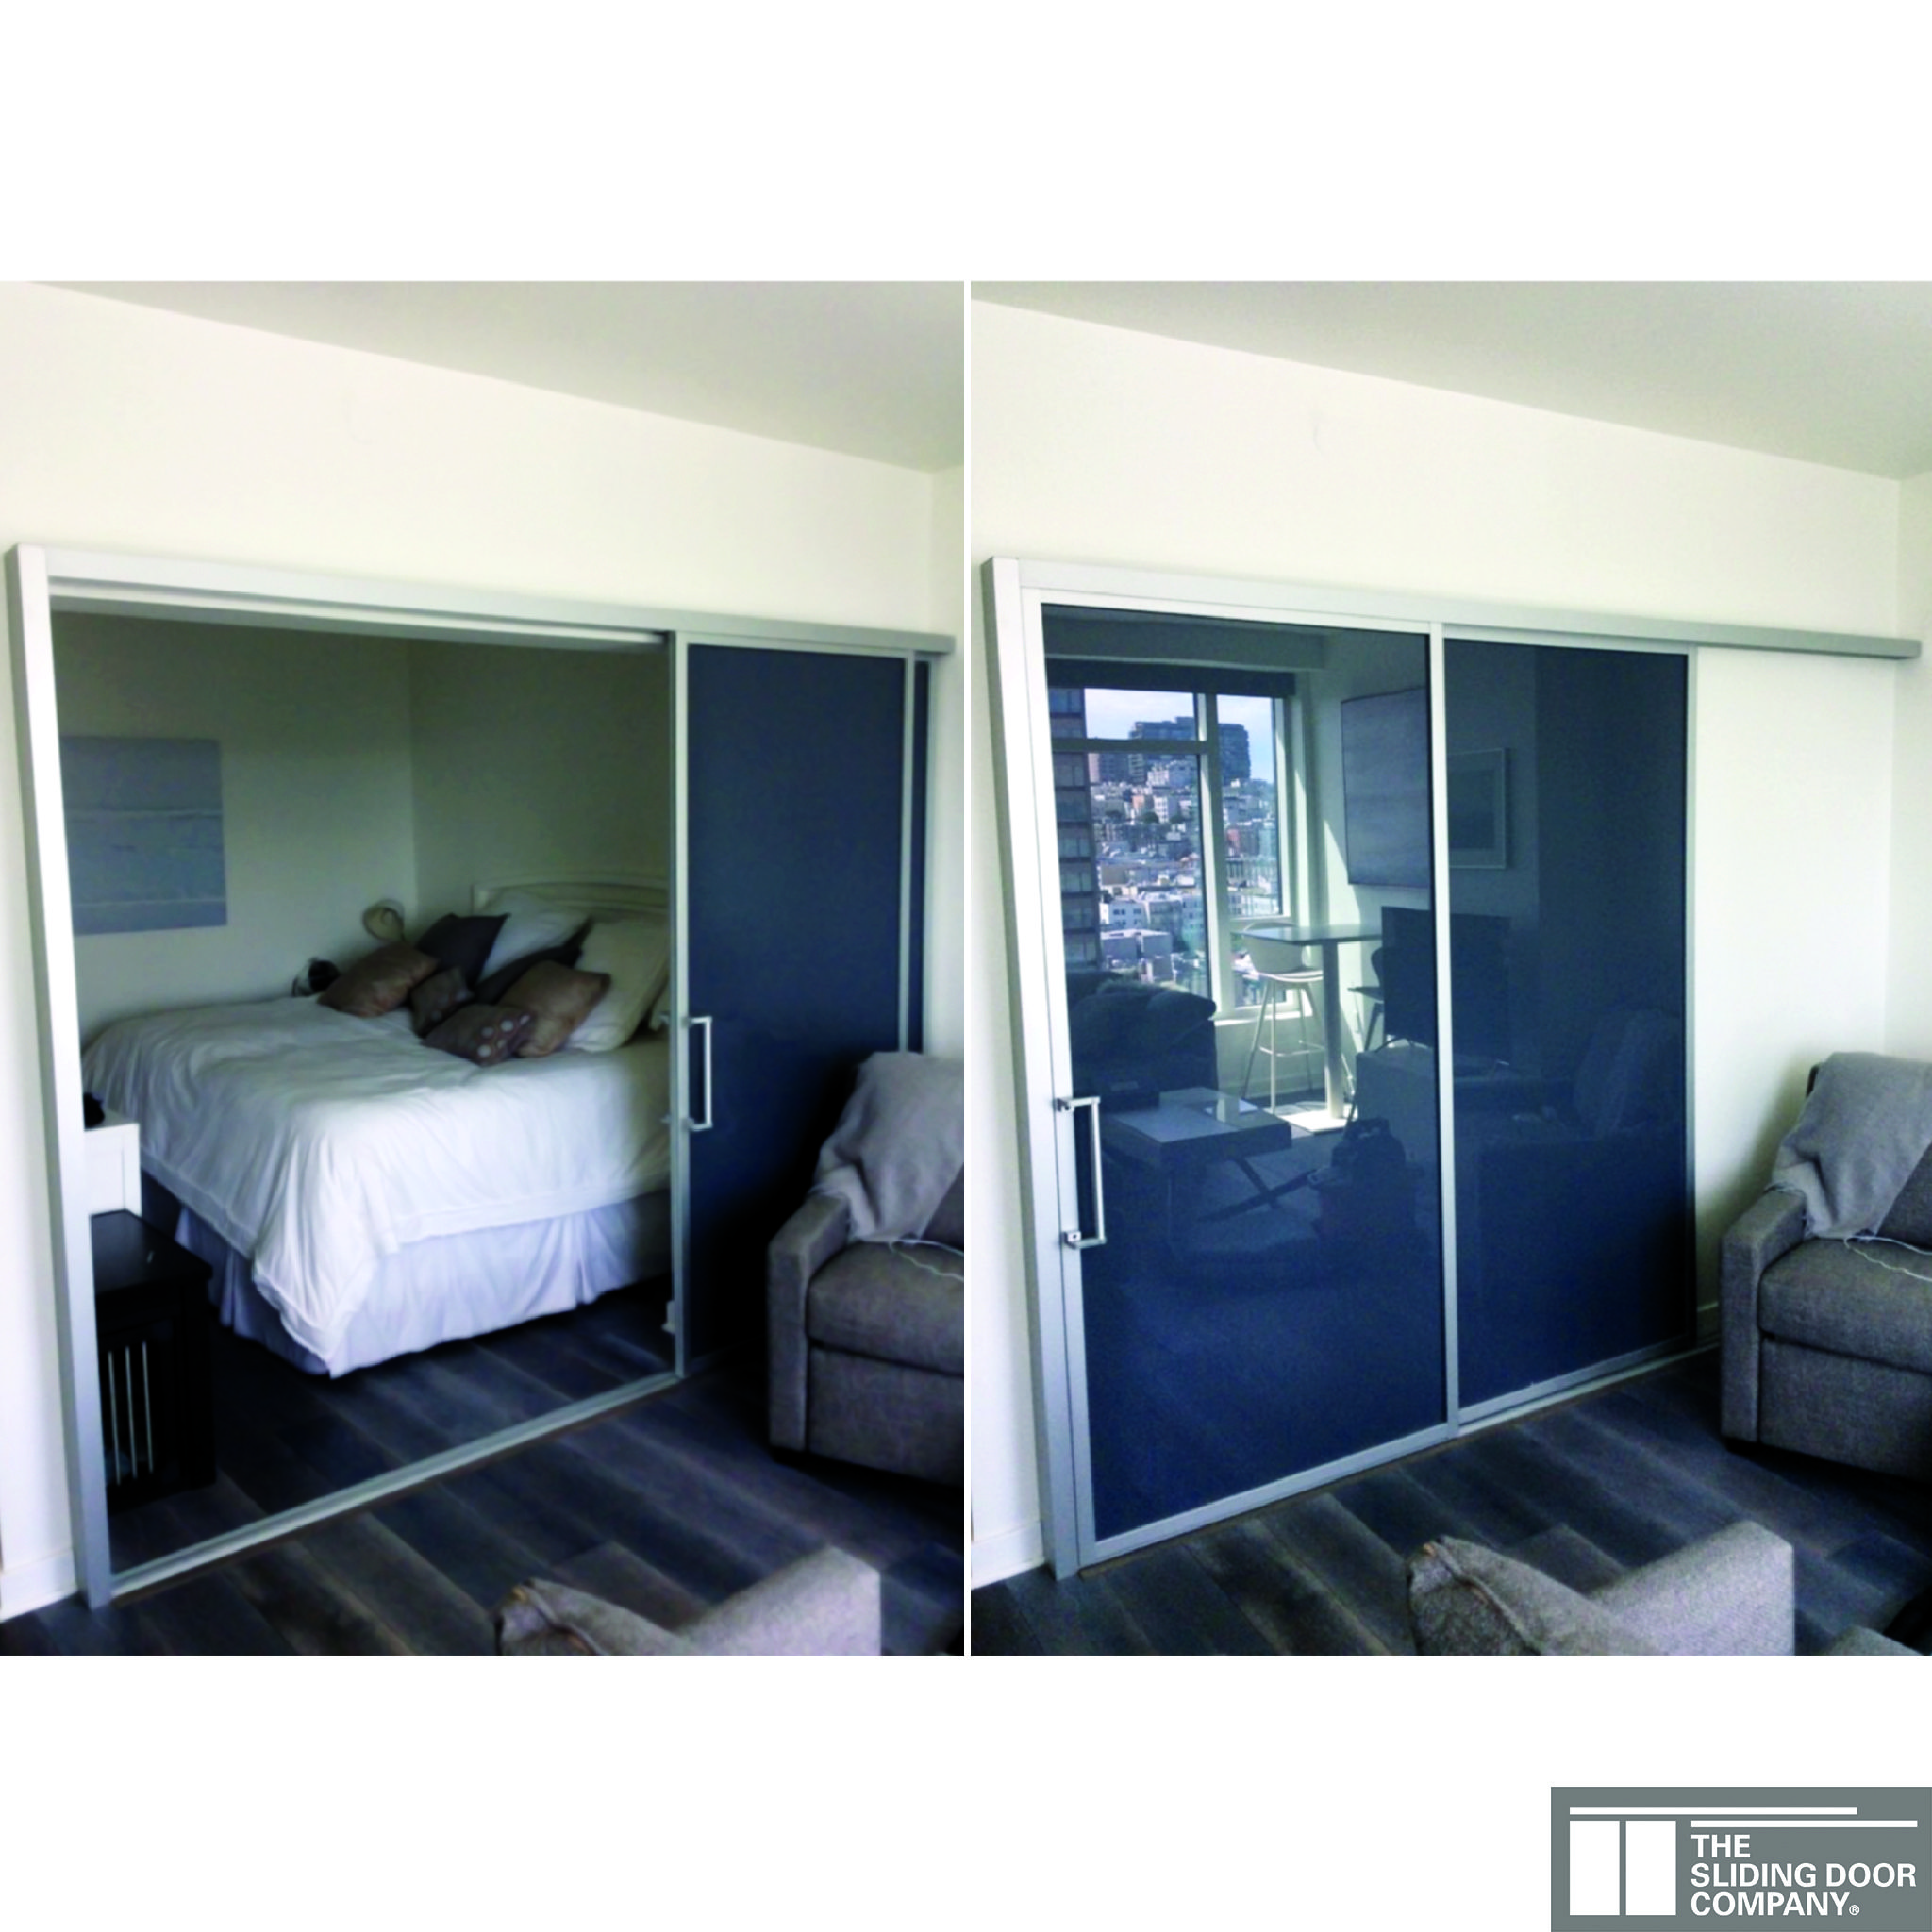 Interior Glass Sliding Doors The Sliding Door Company Door Dividers Sliding Glass Door Sliding Doors Interior